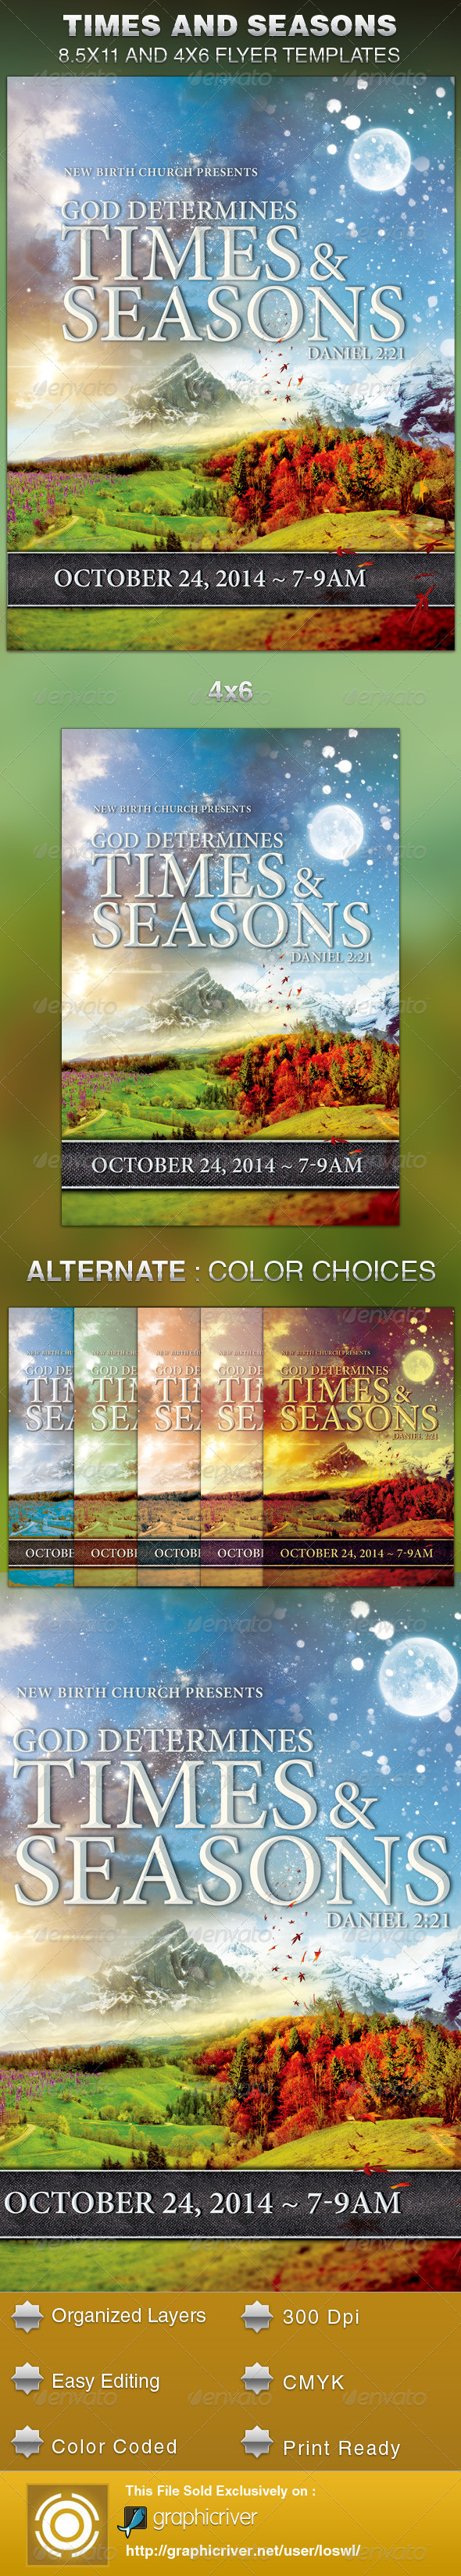 GraphicRiver God Determines Times And Seasons Church Flyer 5997935